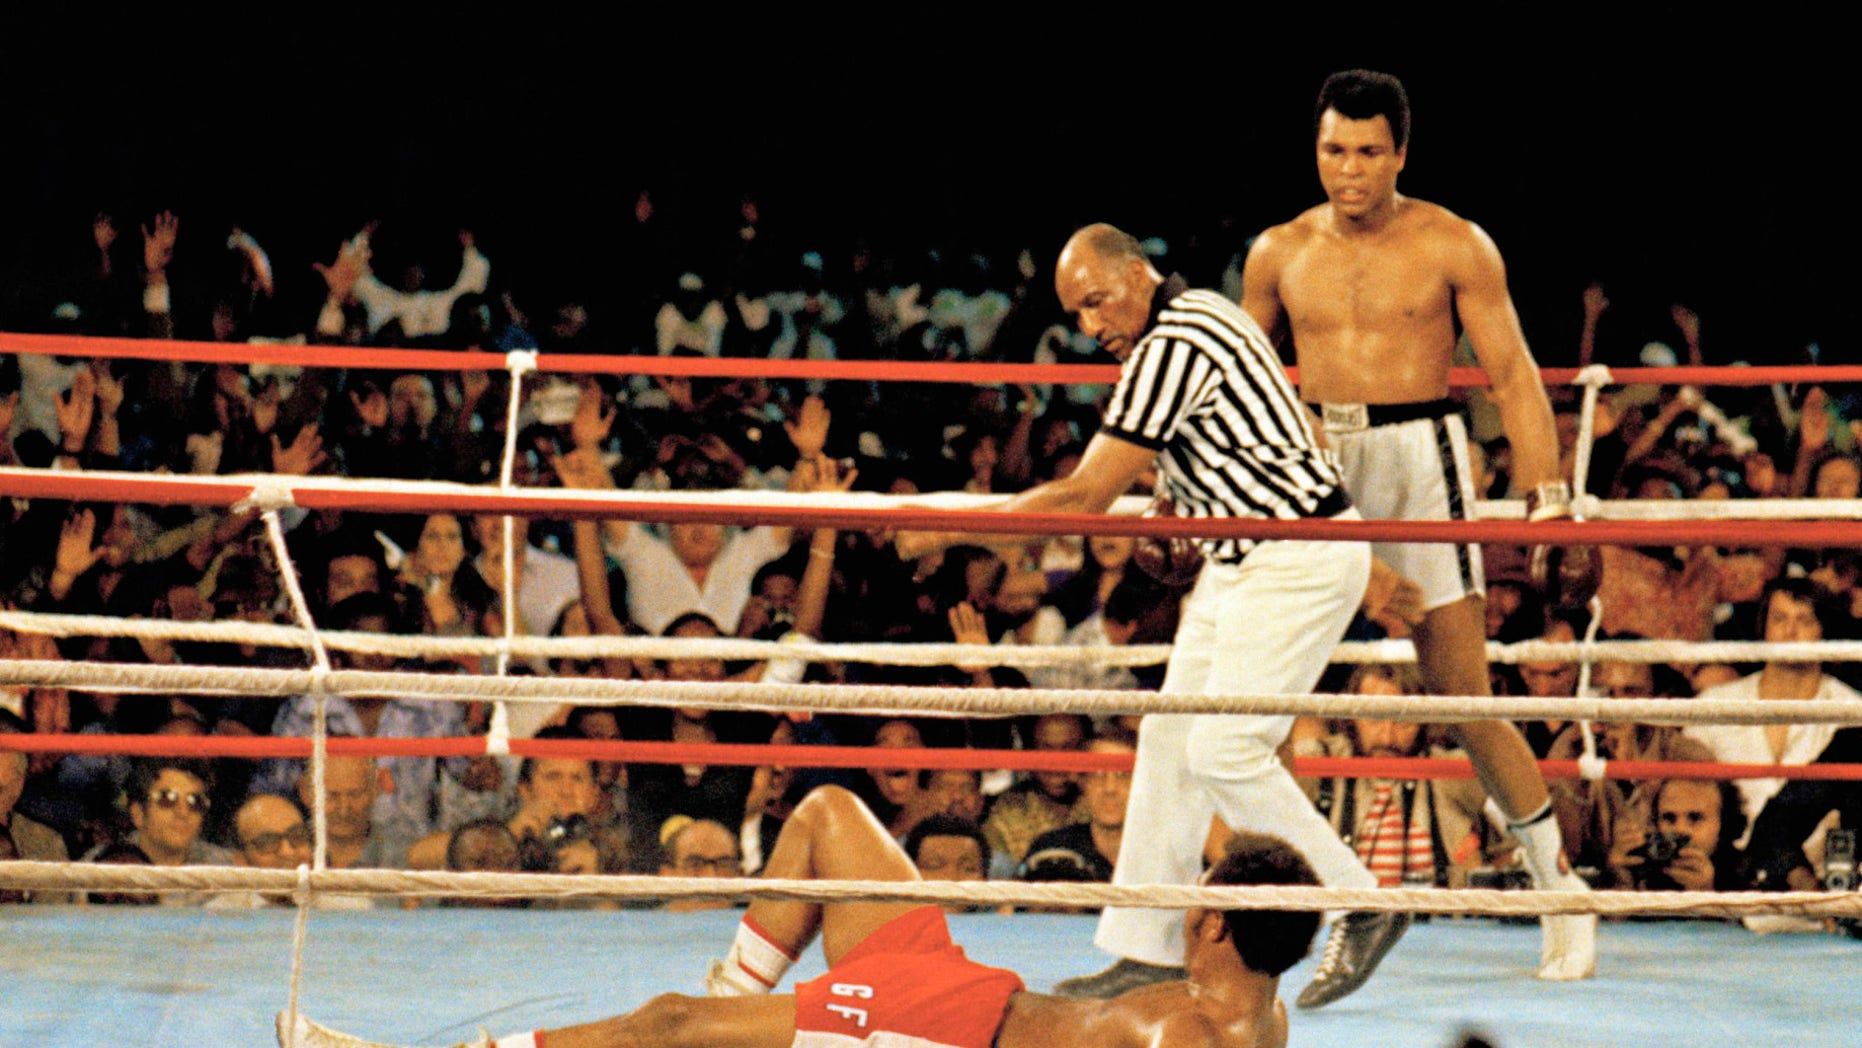 This is a Oct. 30, 1974 file photo of Muhammad Ali, reg, as he stands back as referee Zack Clayton calls the count over opponent George Foreman, red shorts, in Kinshasa, Zaire.  (AP-foto, lêer)